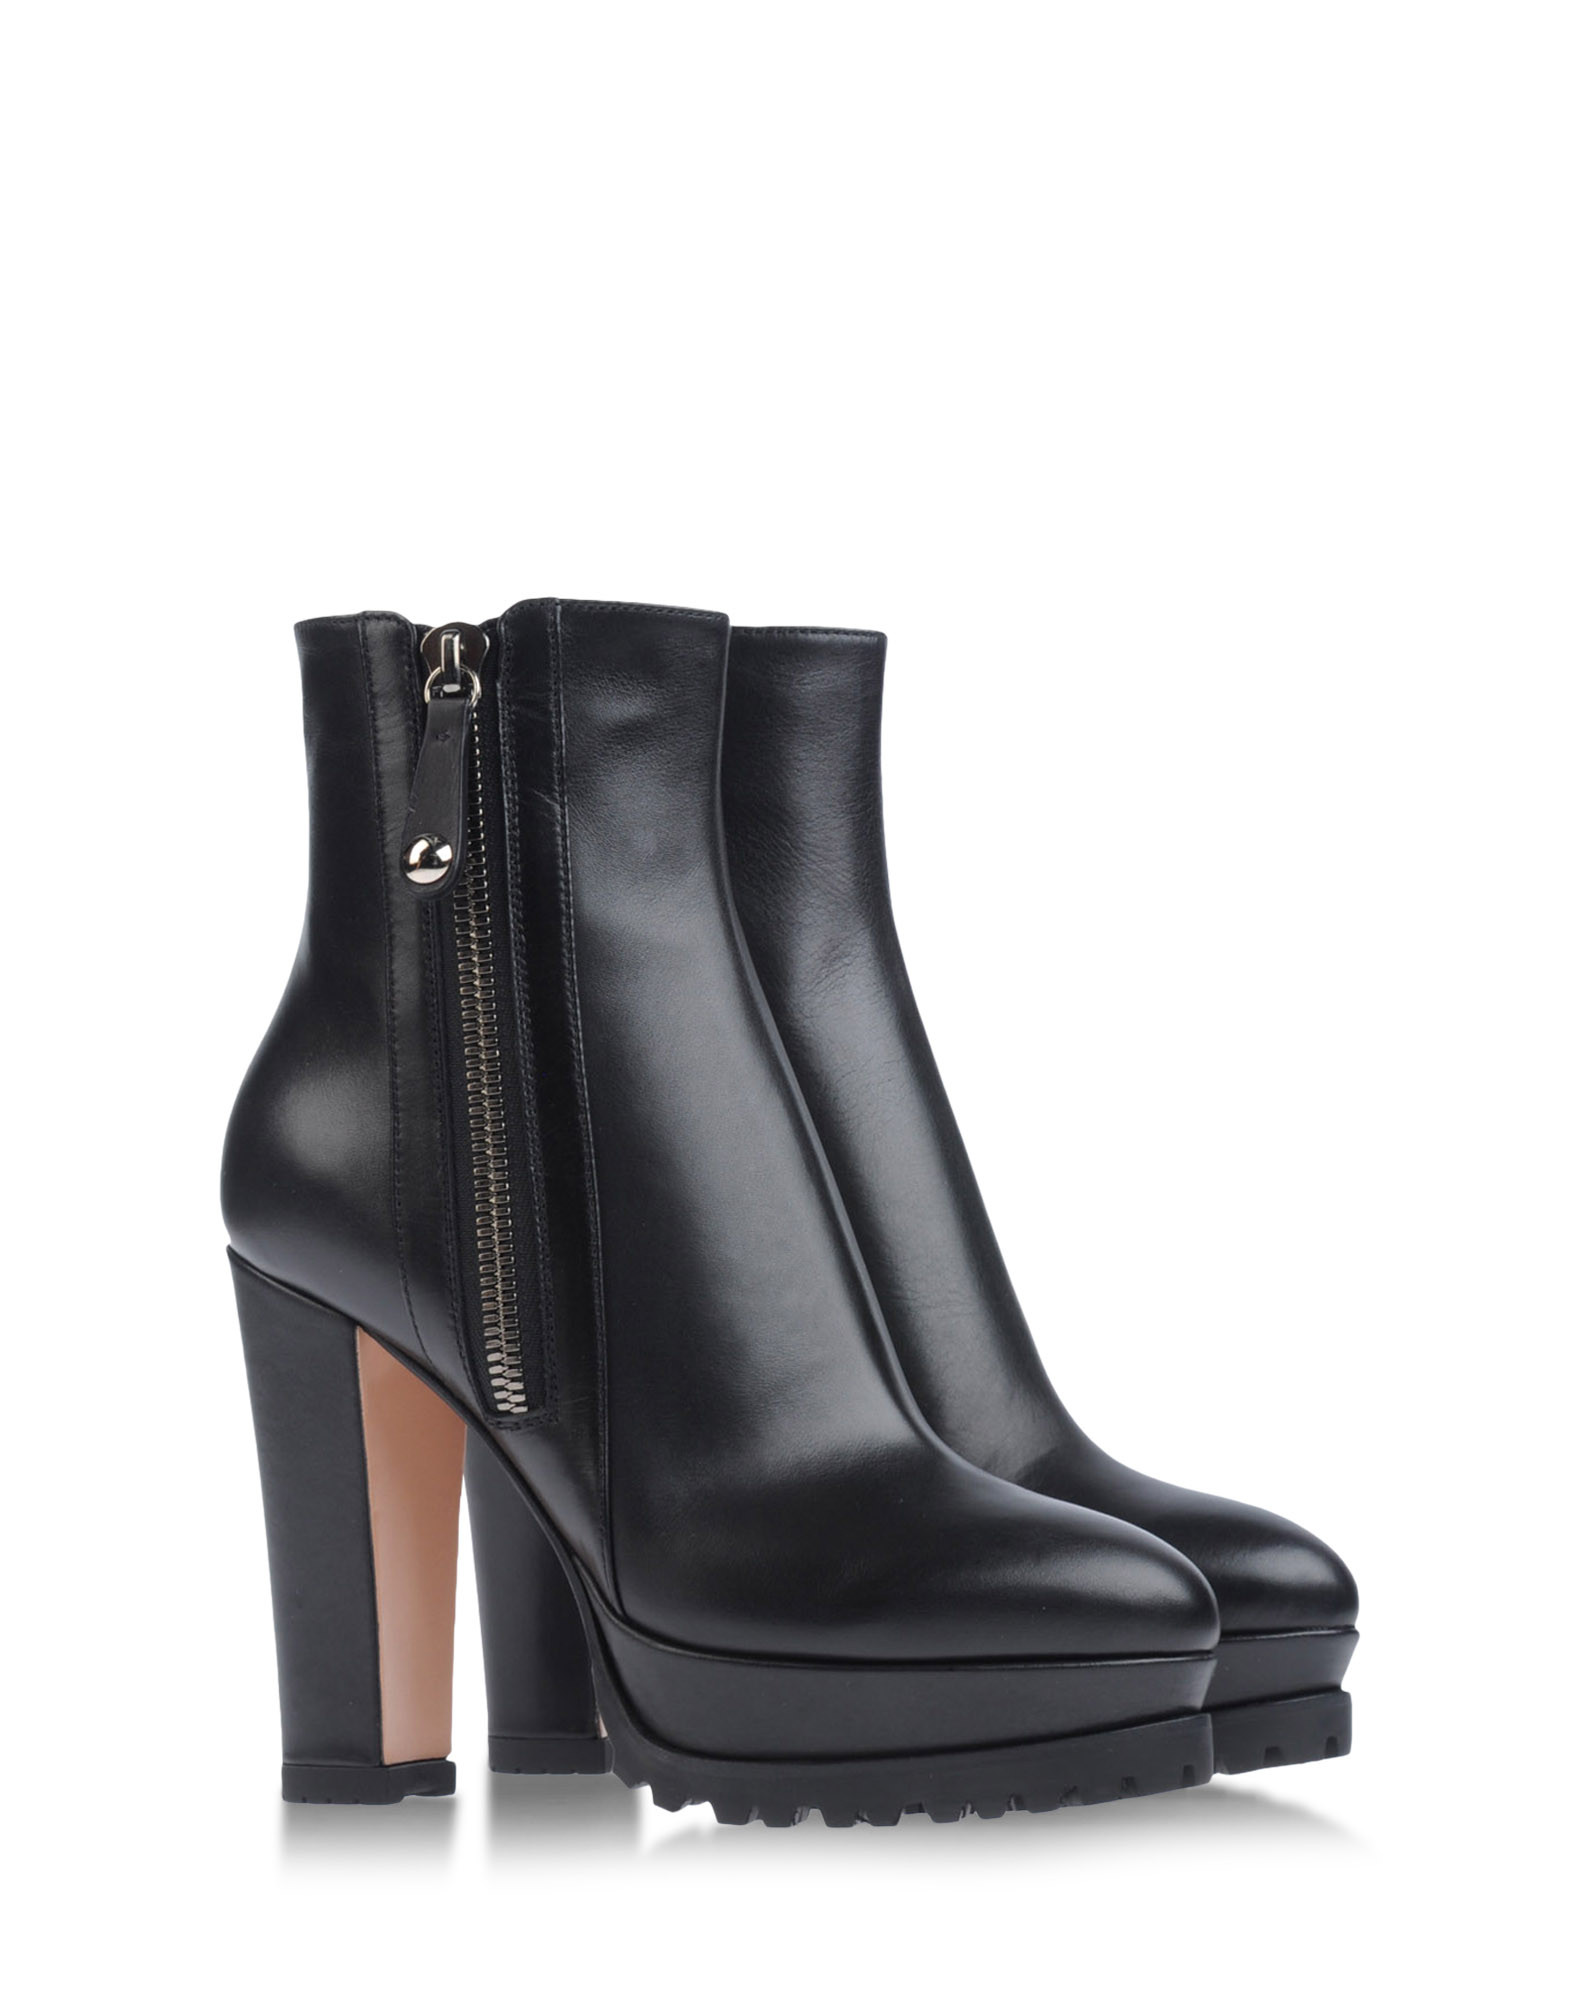 gianvito rossi ankle boots in black lyst. Black Bedroom Furniture Sets. Home Design Ideas